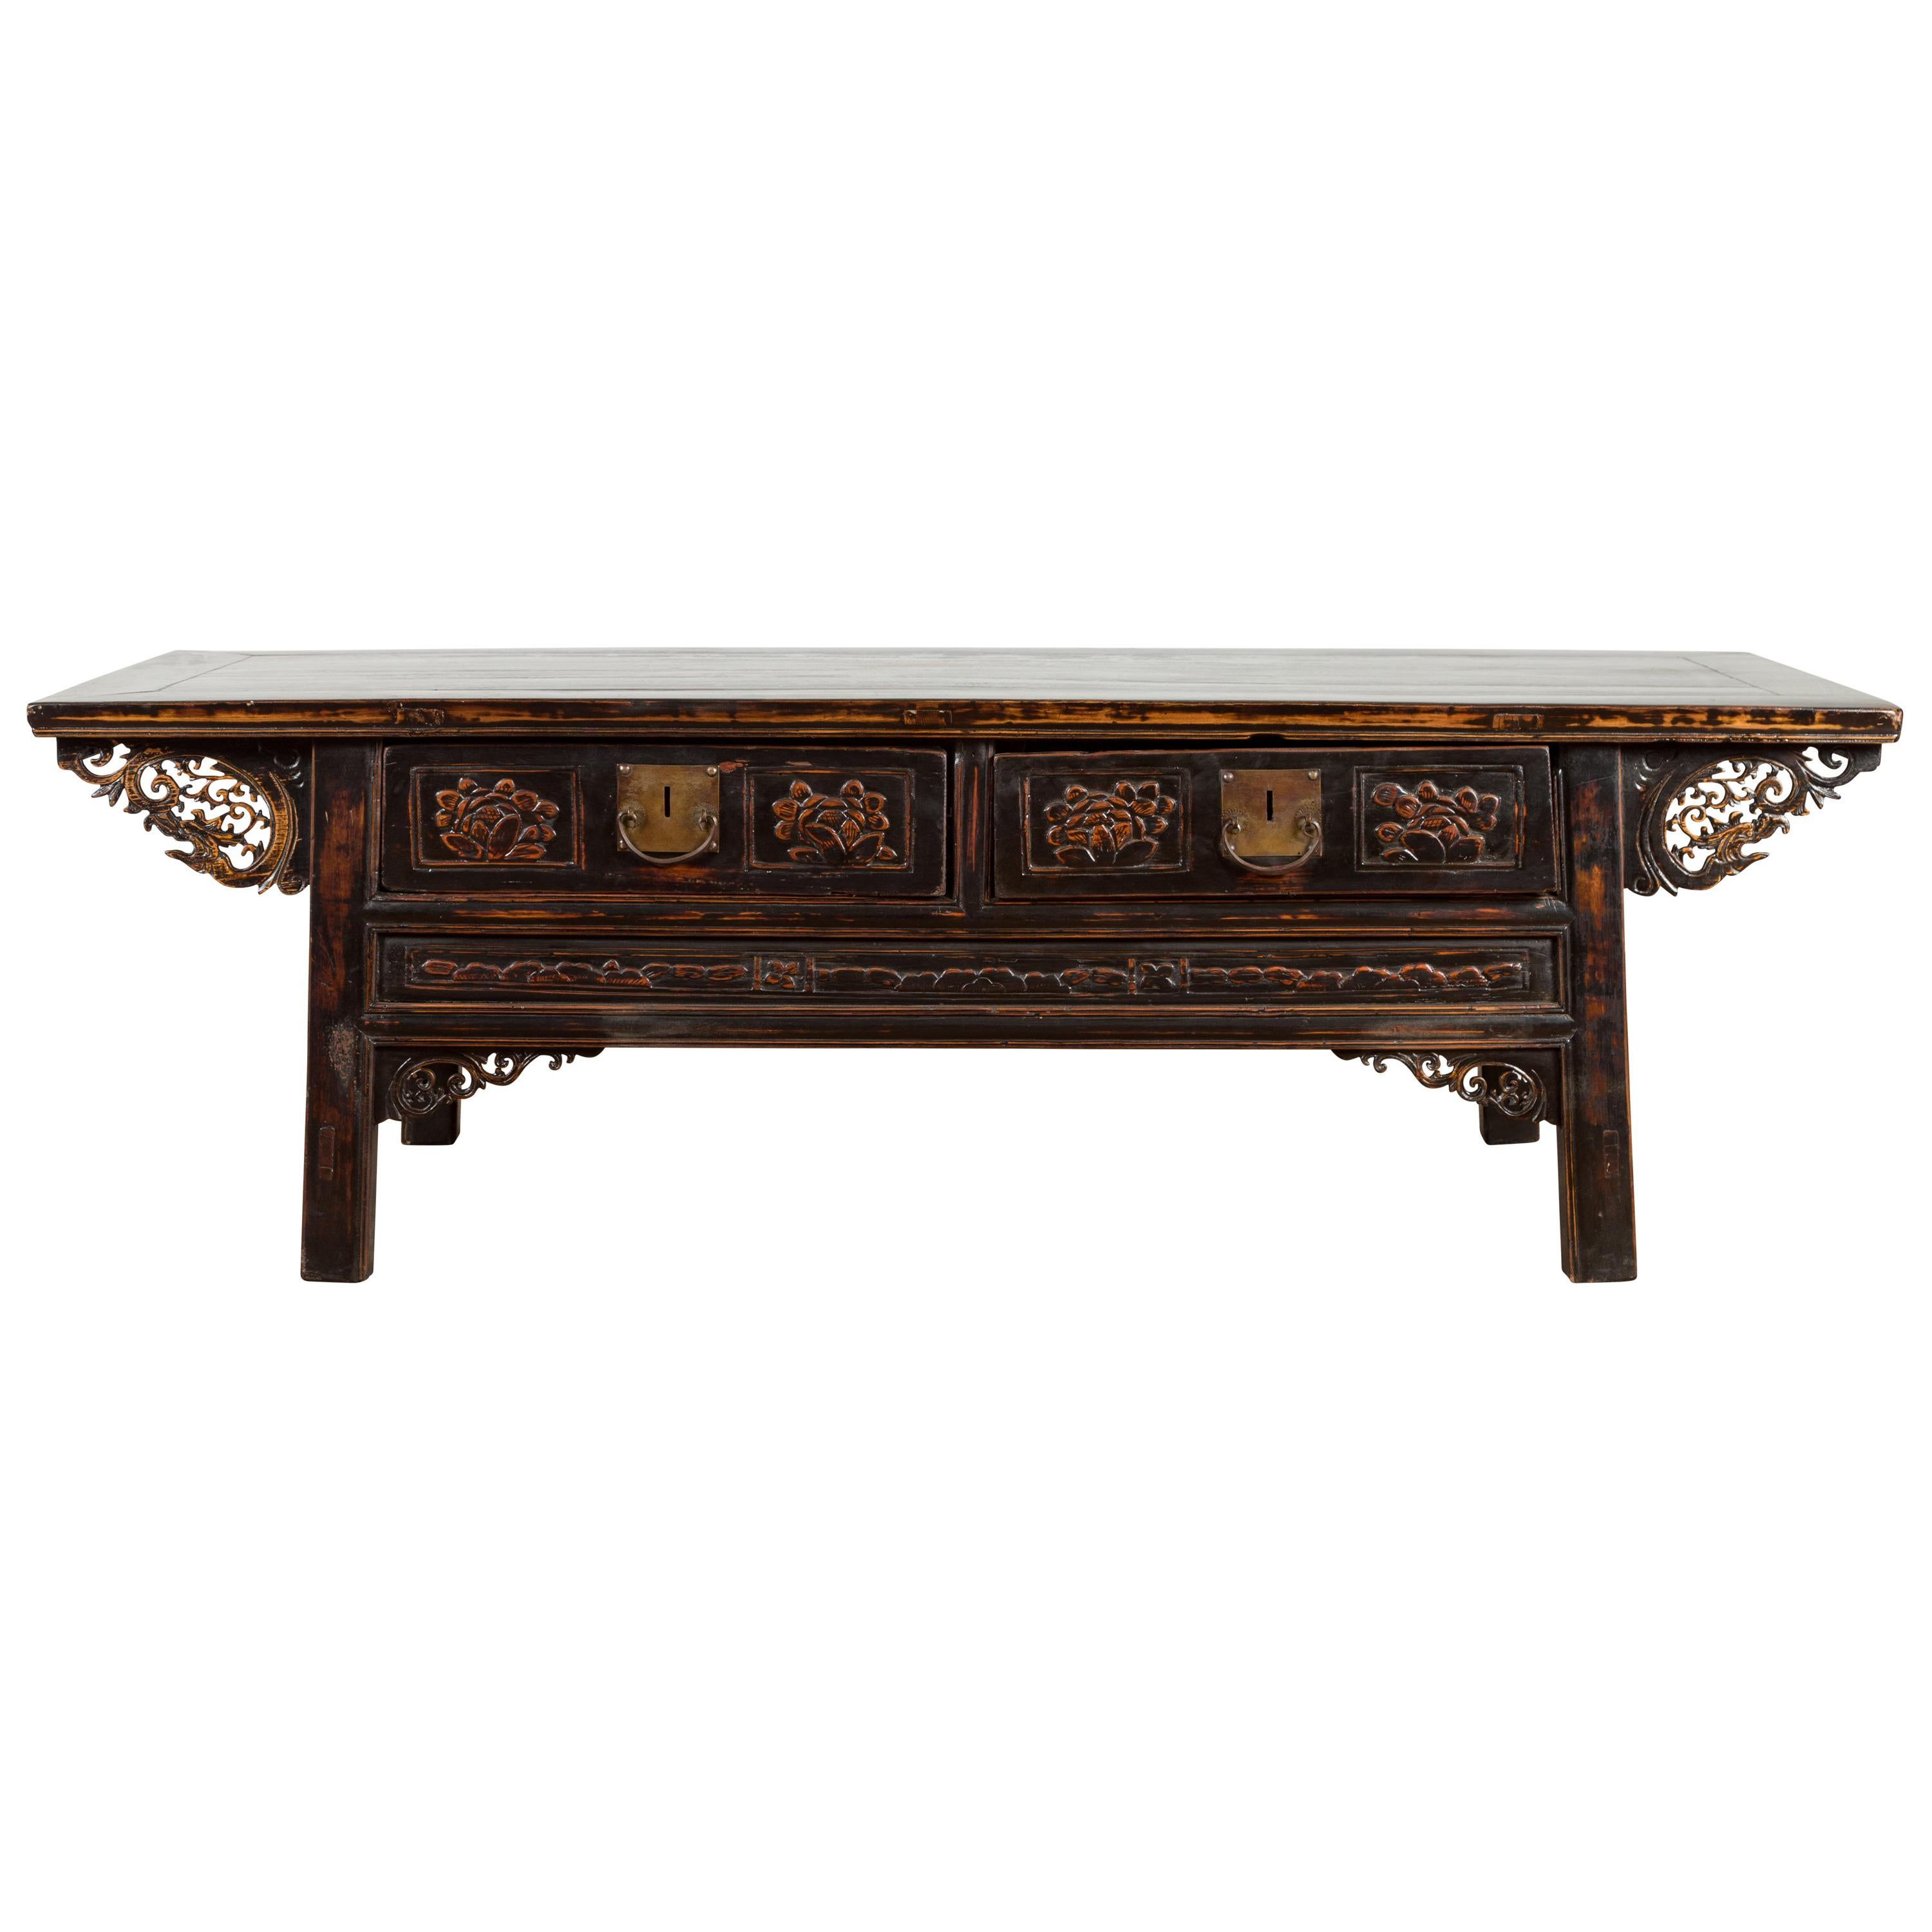 Chinese Qing Dynasty 19th Century Black Lacquer Coffee Table with Two Drawers